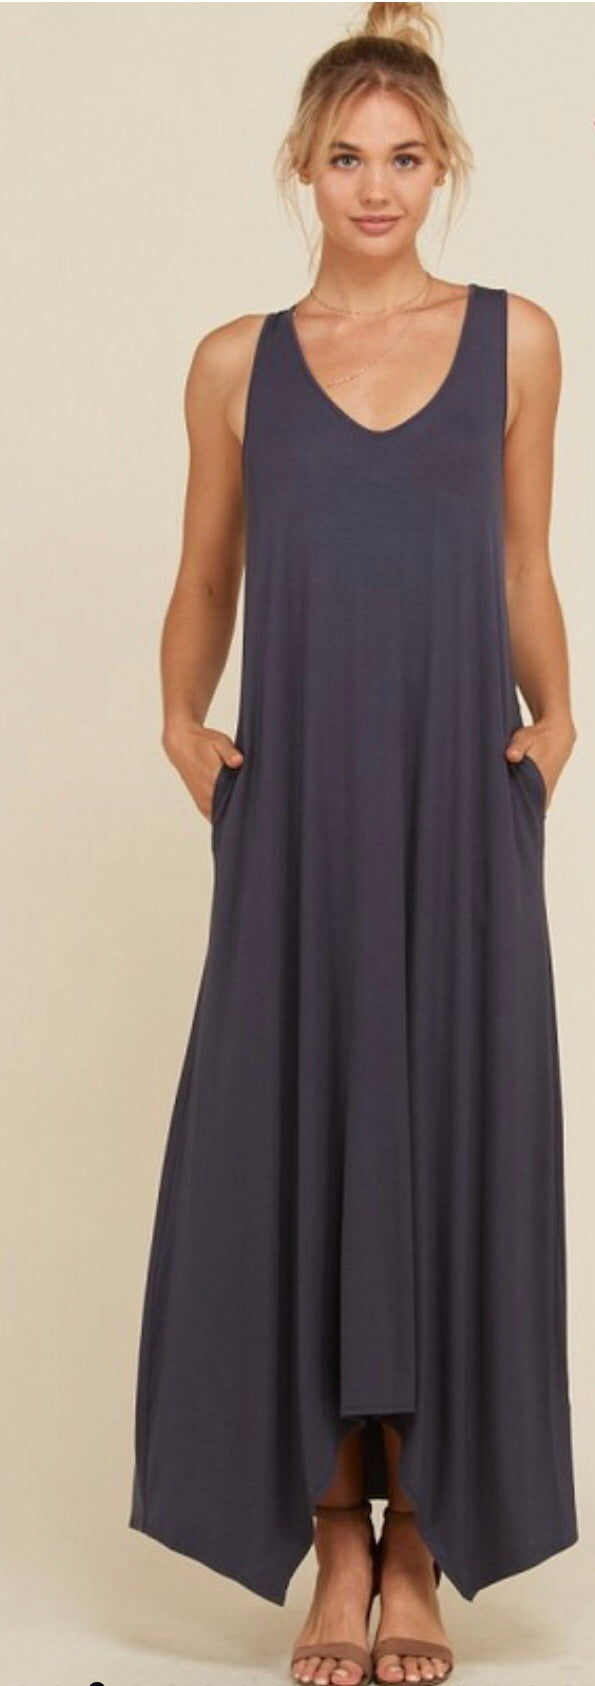 Detroit Maxi Dress in Slate